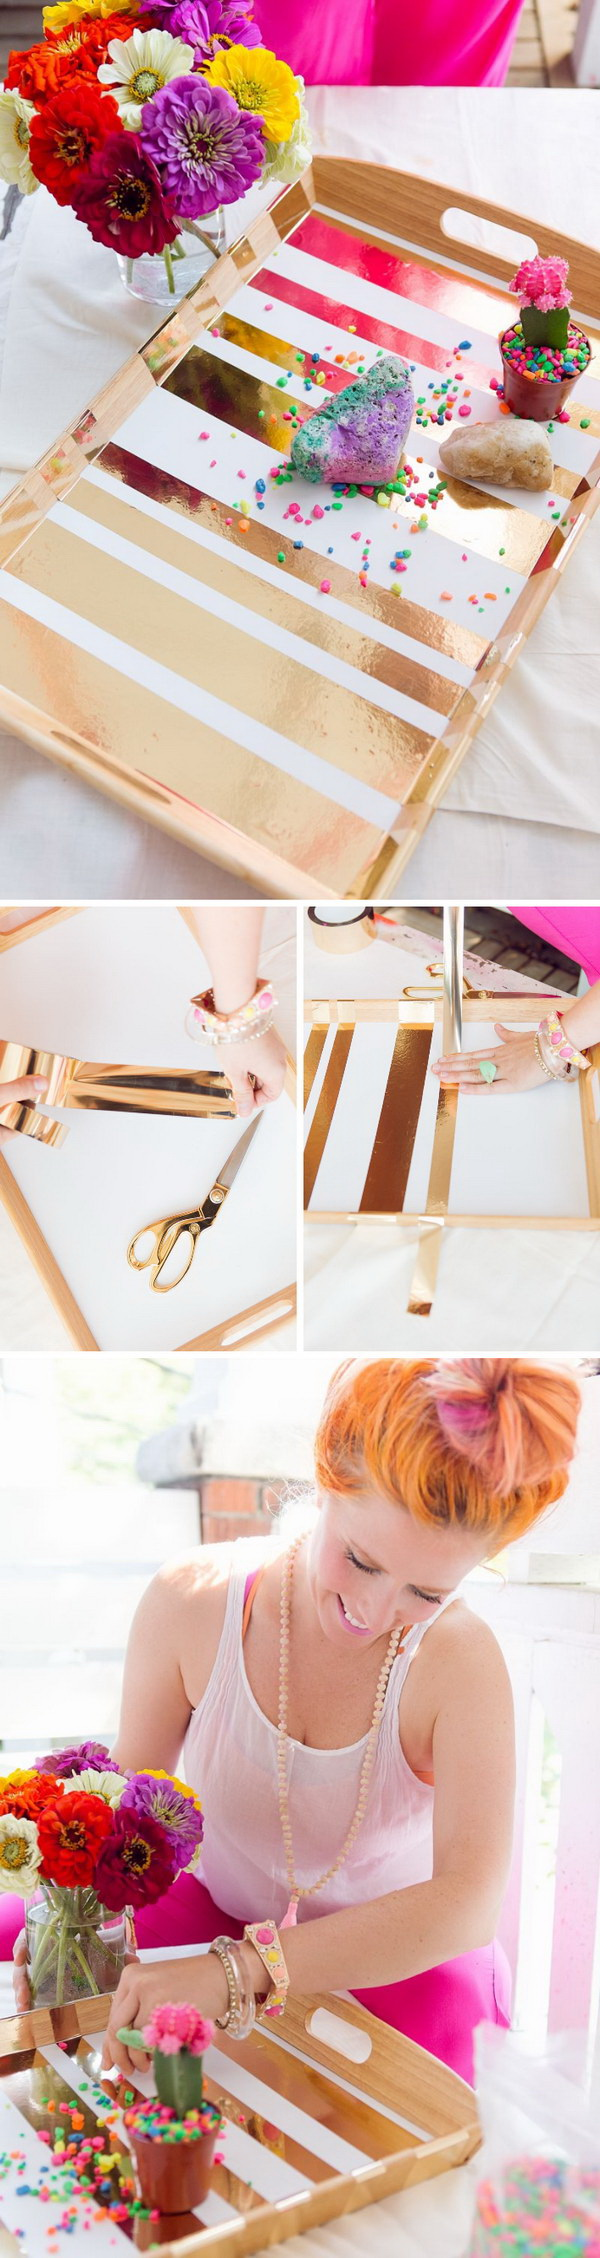 Mother's Day Crafts and gifts: DIY Gold Taped Serving Tray.